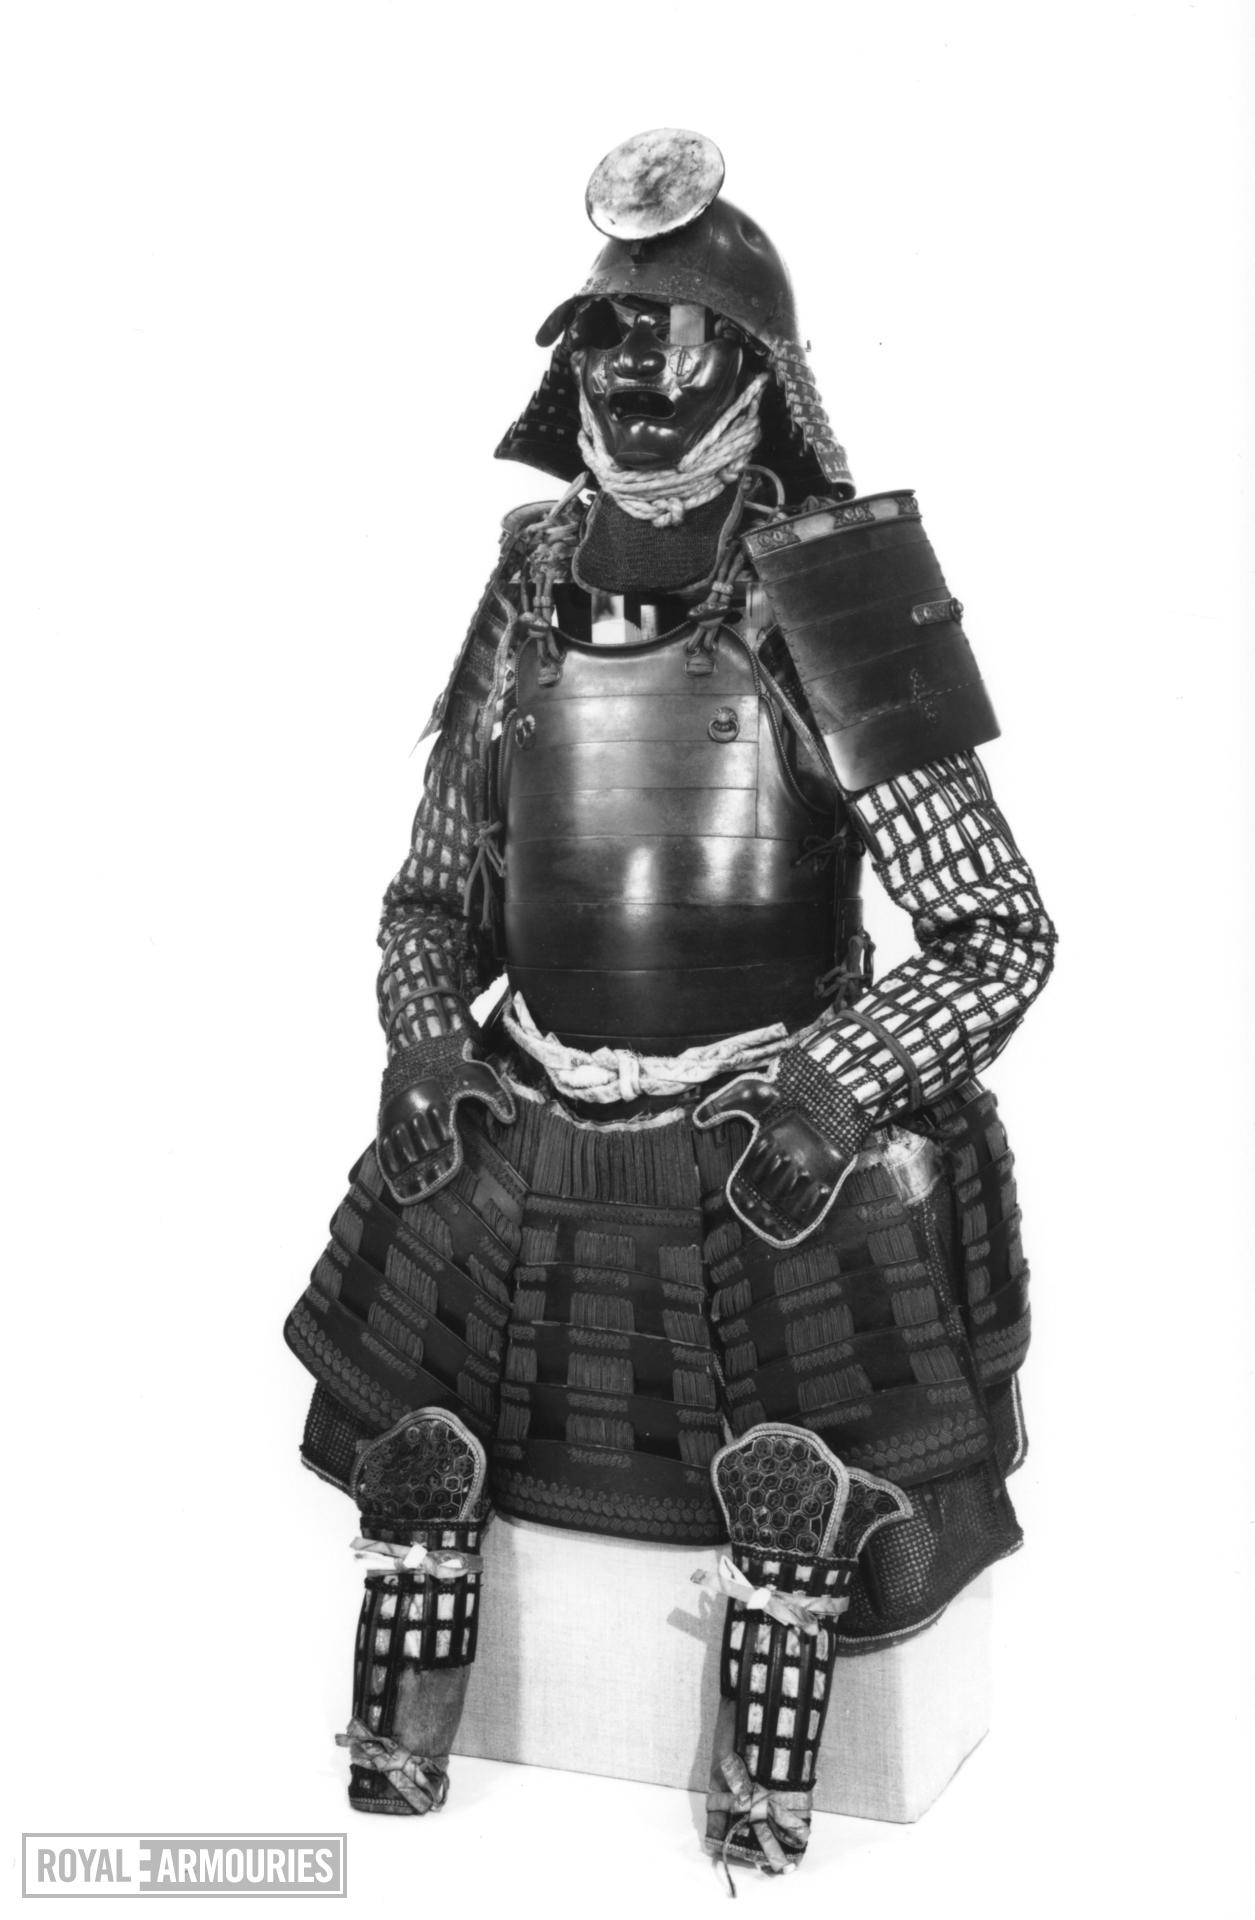 Armour (tosei gusoku) with tested helmet and do with sliding rivets.